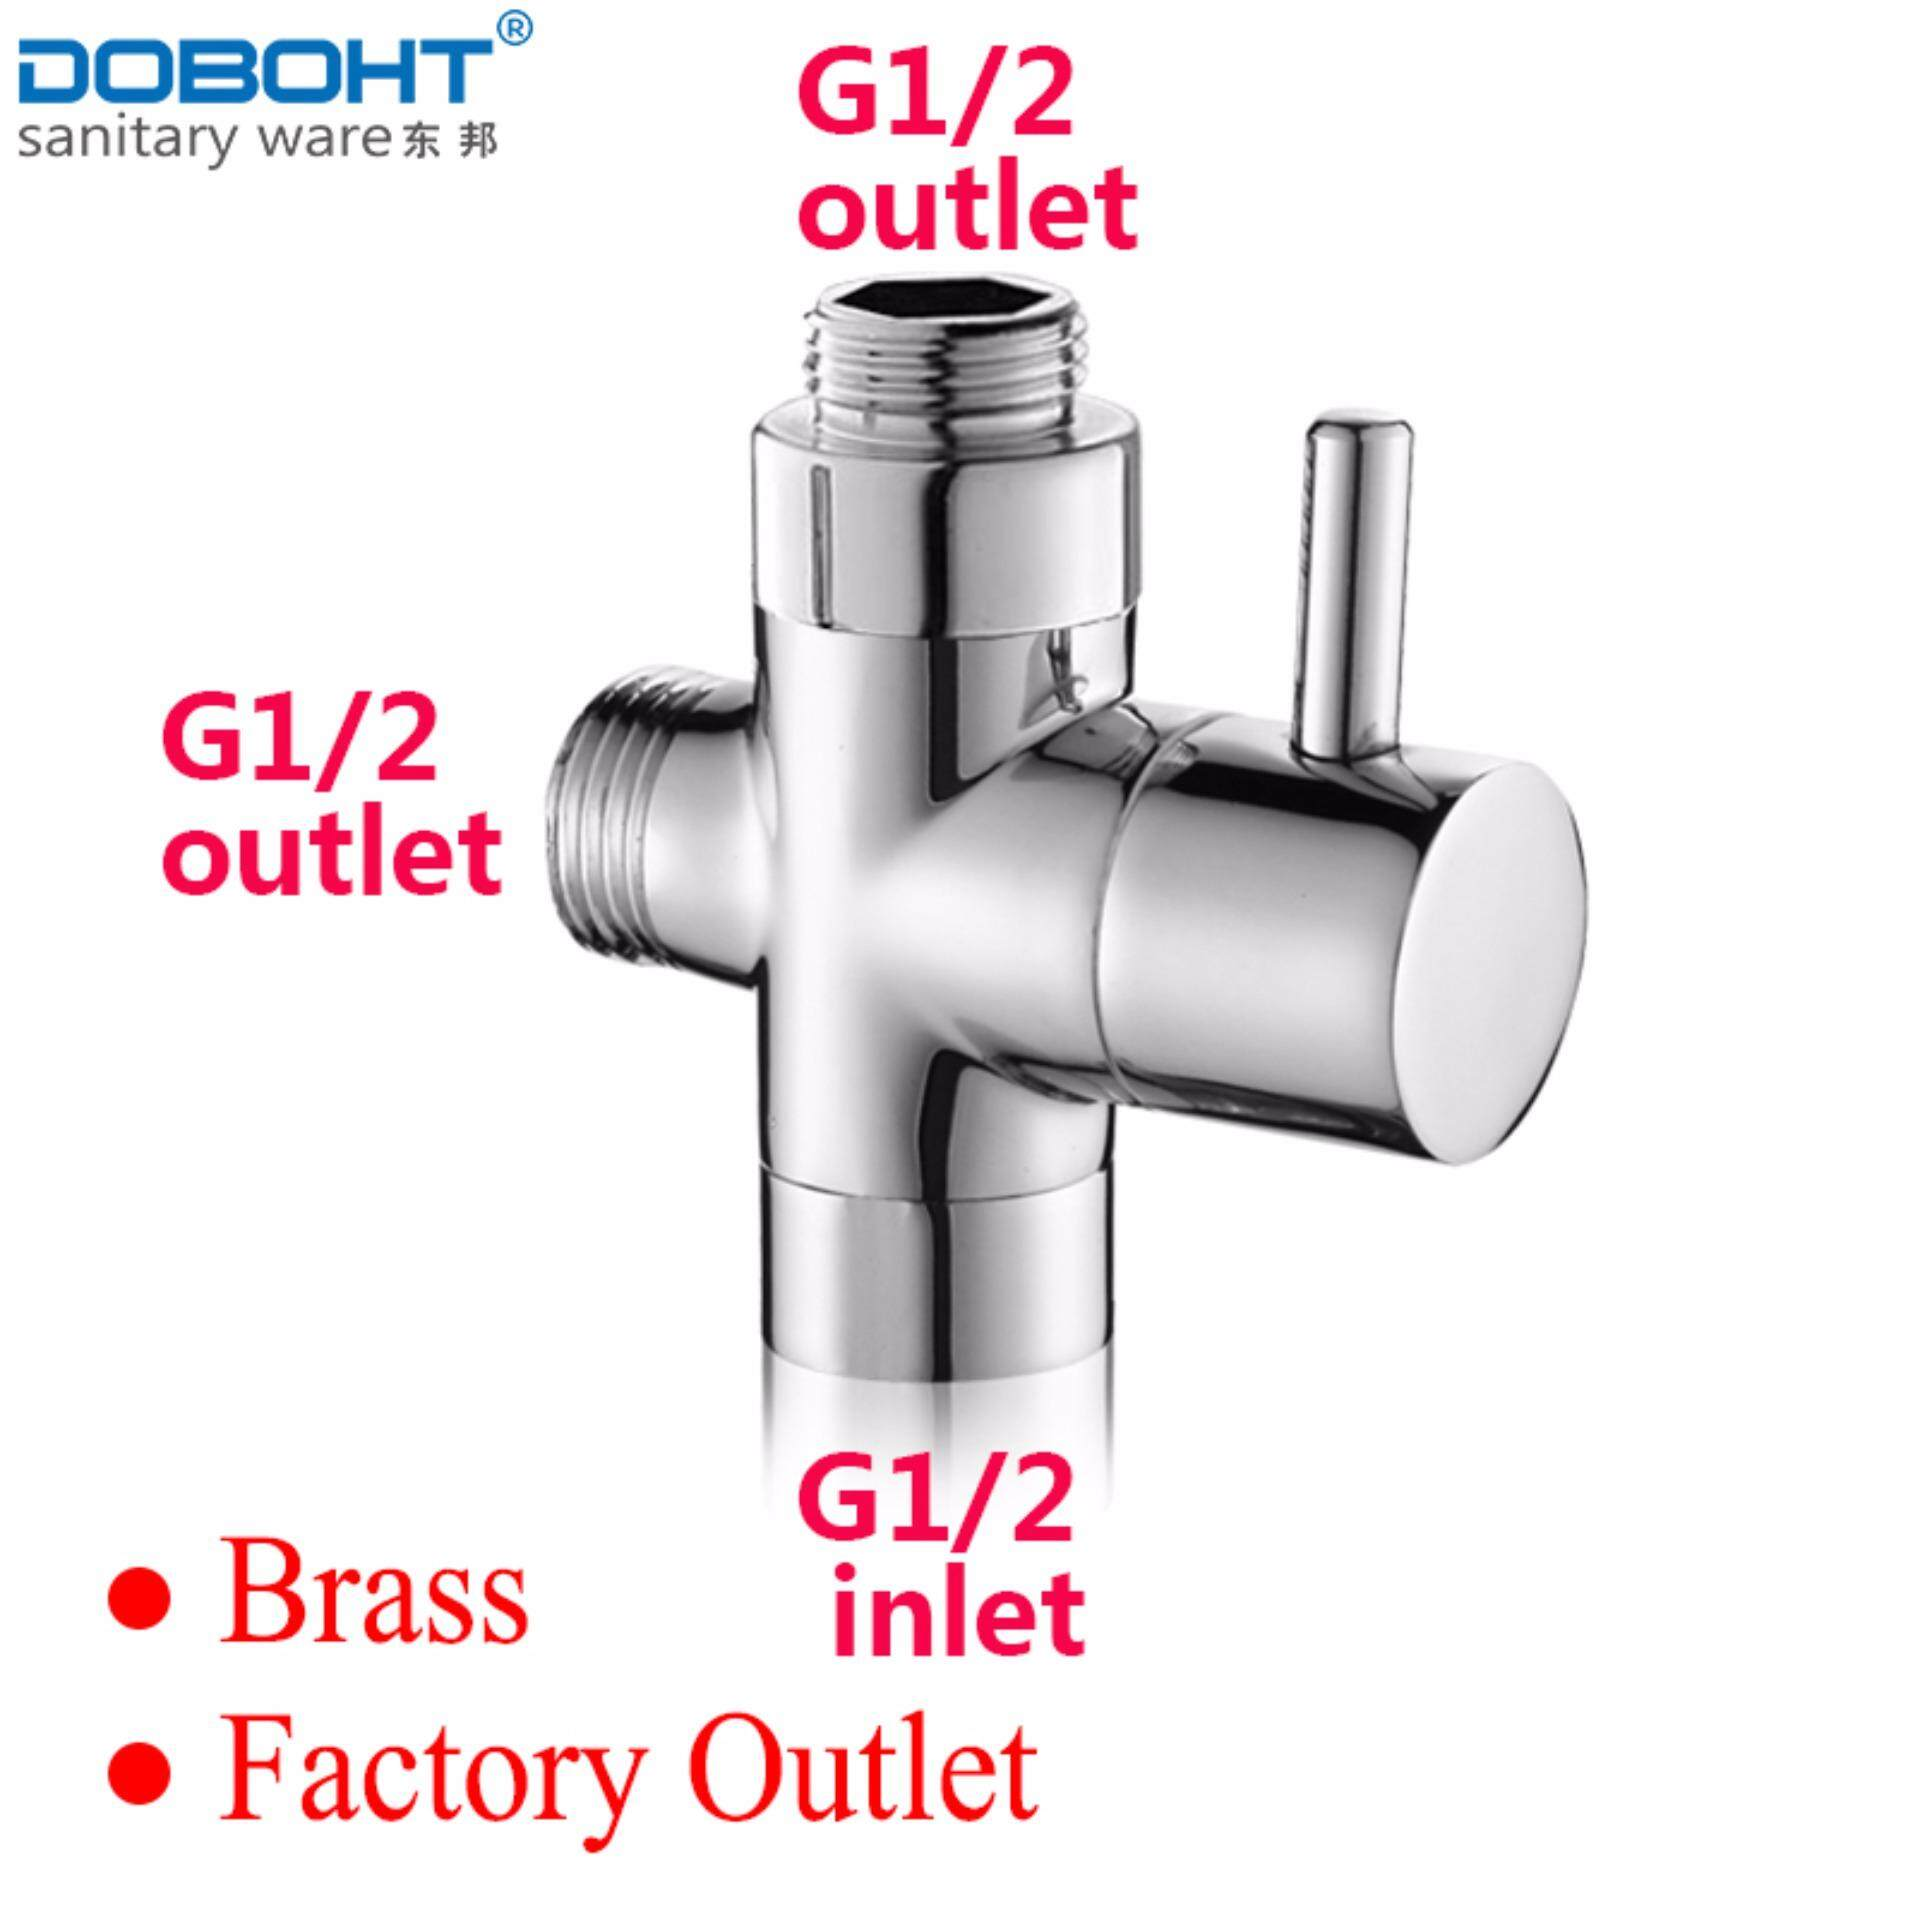 ทบทวน Doboht Chrome Brass 3 Way Adapter Valve G1 2 To G1 2 G1 2 Water Converter Bathroom Shower Set Converter Tub Shower Parts Intl